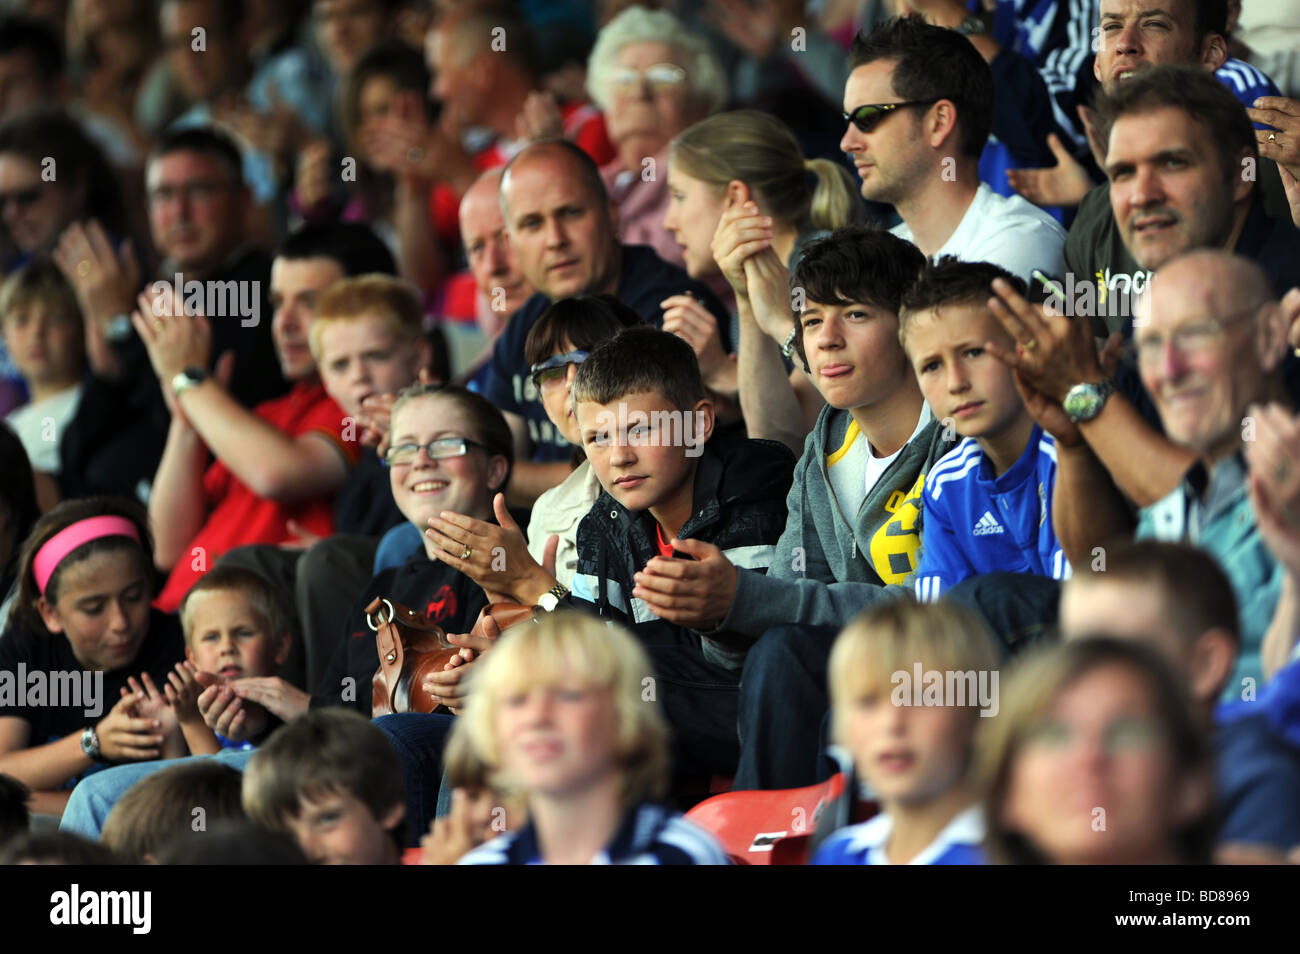 Young faces in the crowd at a football match - Stock Image